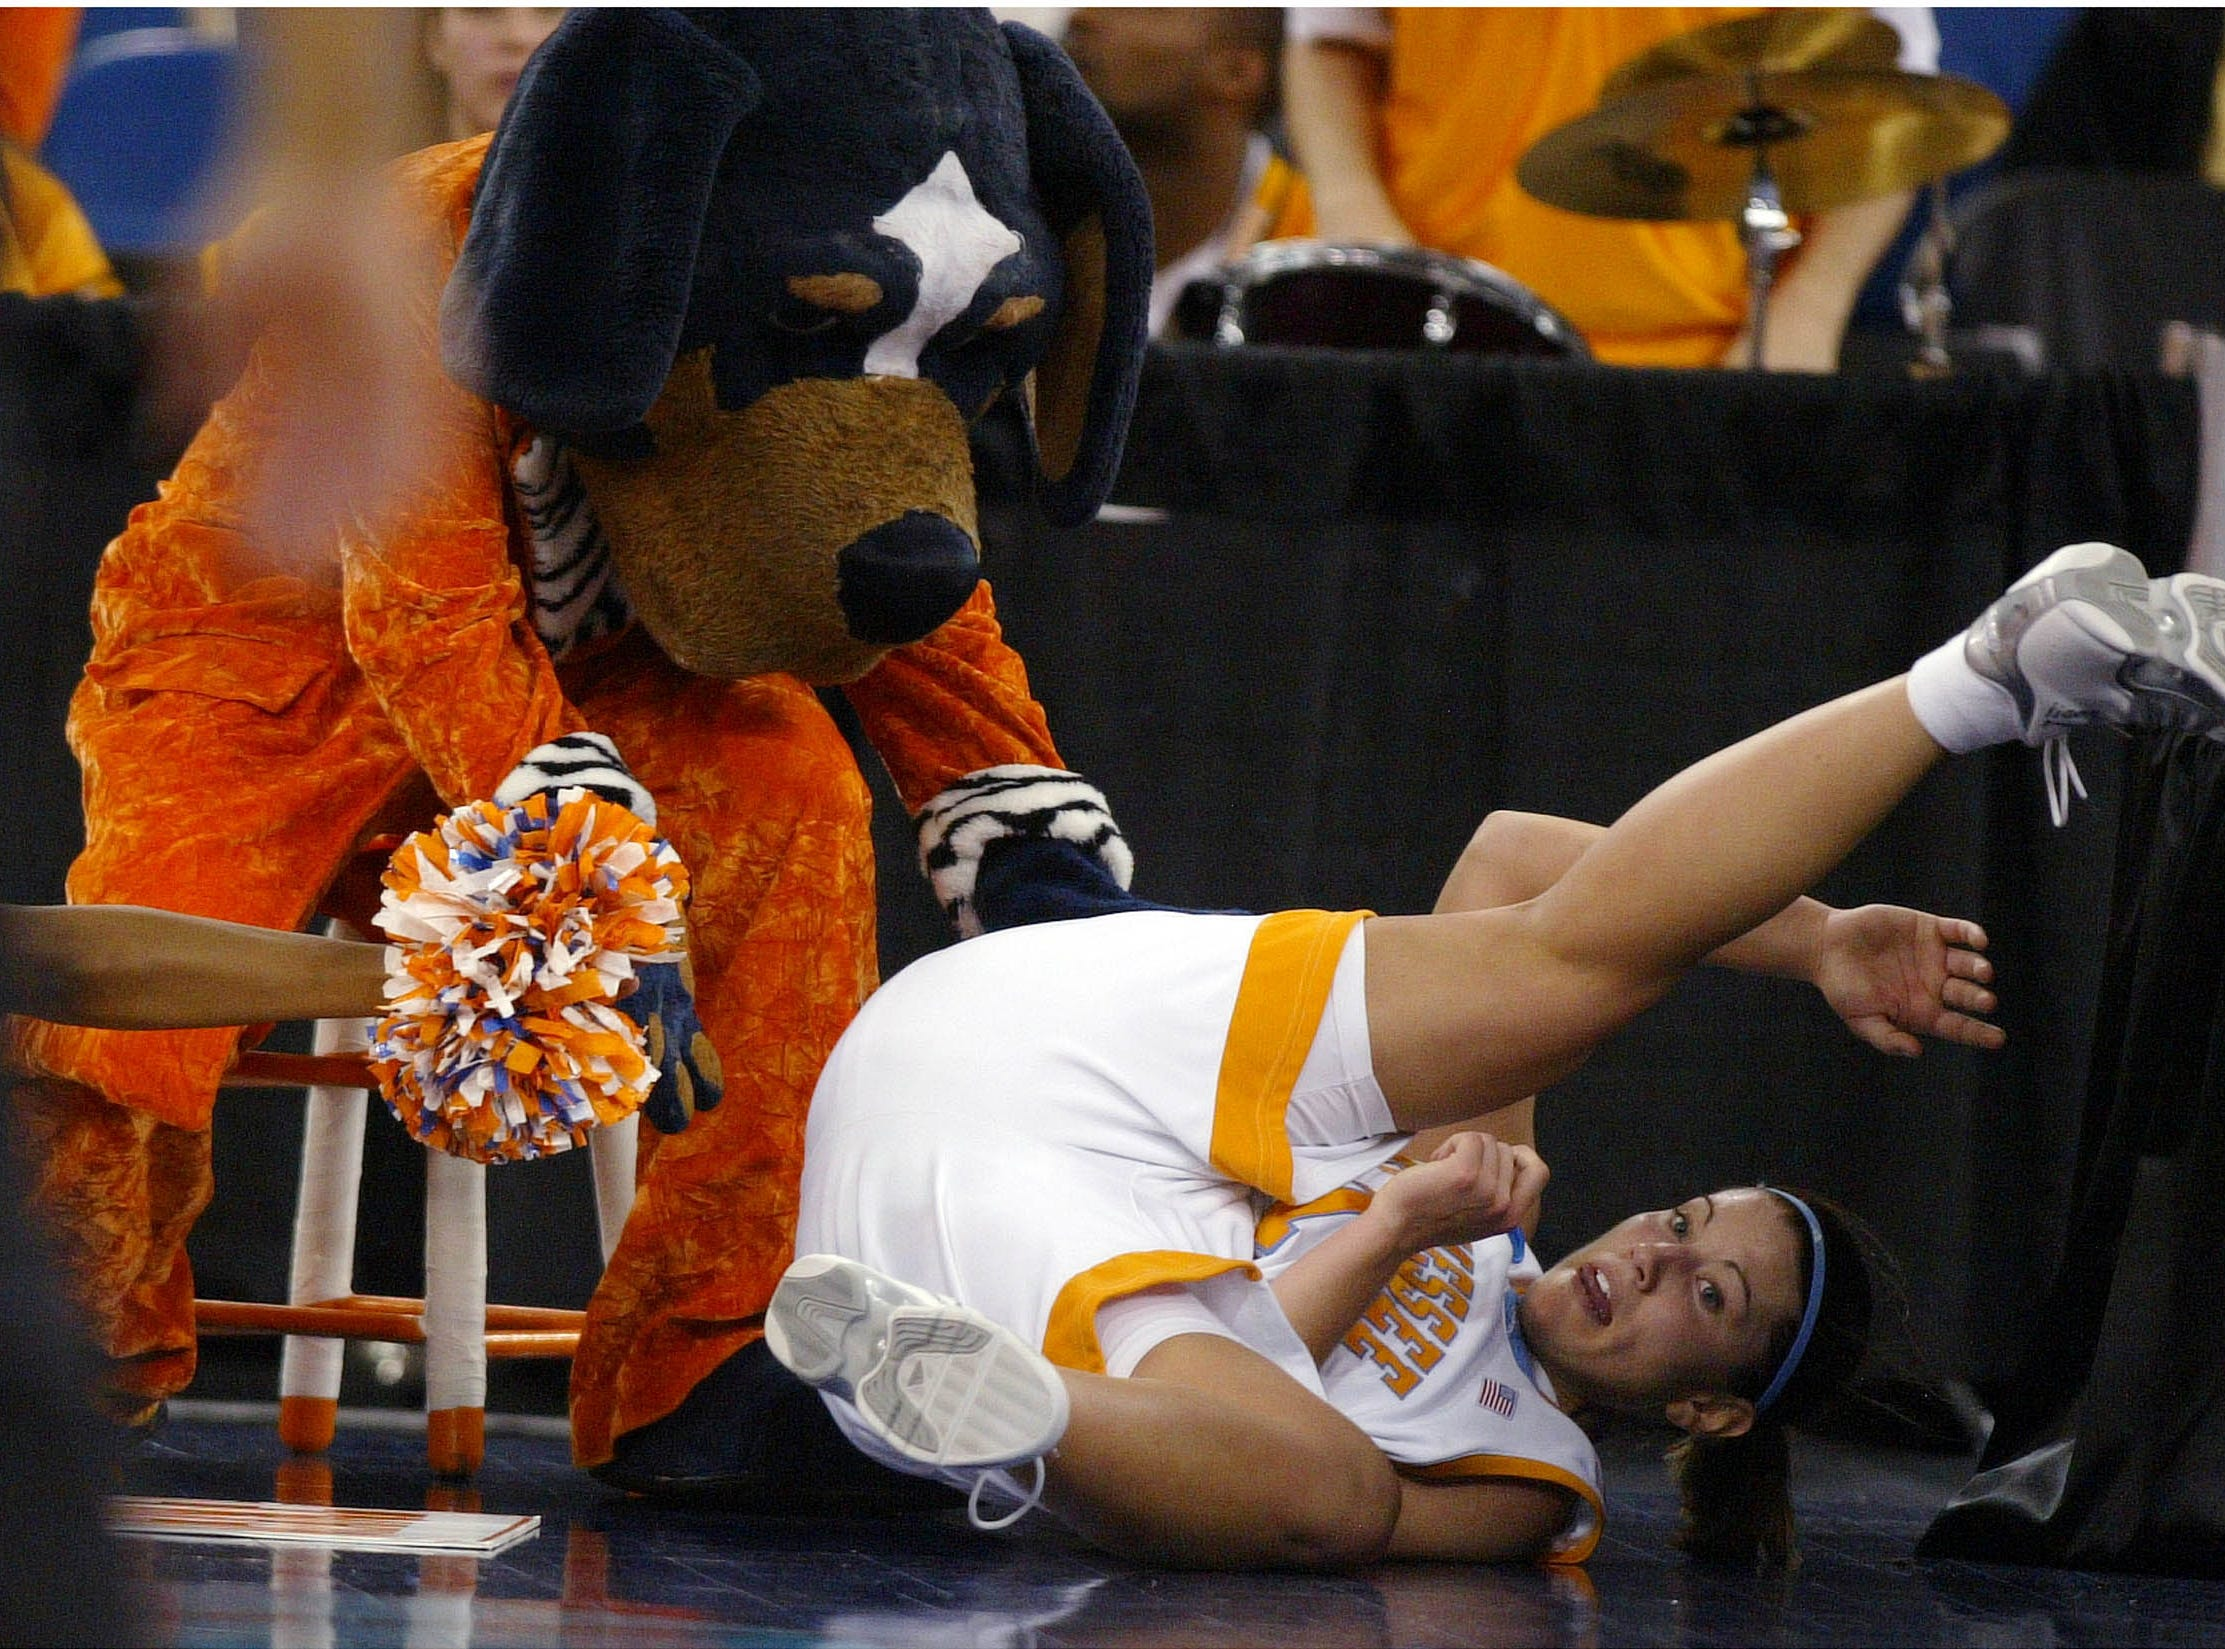 University of Tennessee mascot Smokey tries to catch Lady Vol Shanna Zolman as she falls out of bounds during the team's loss to Michigan State. 04/03/05